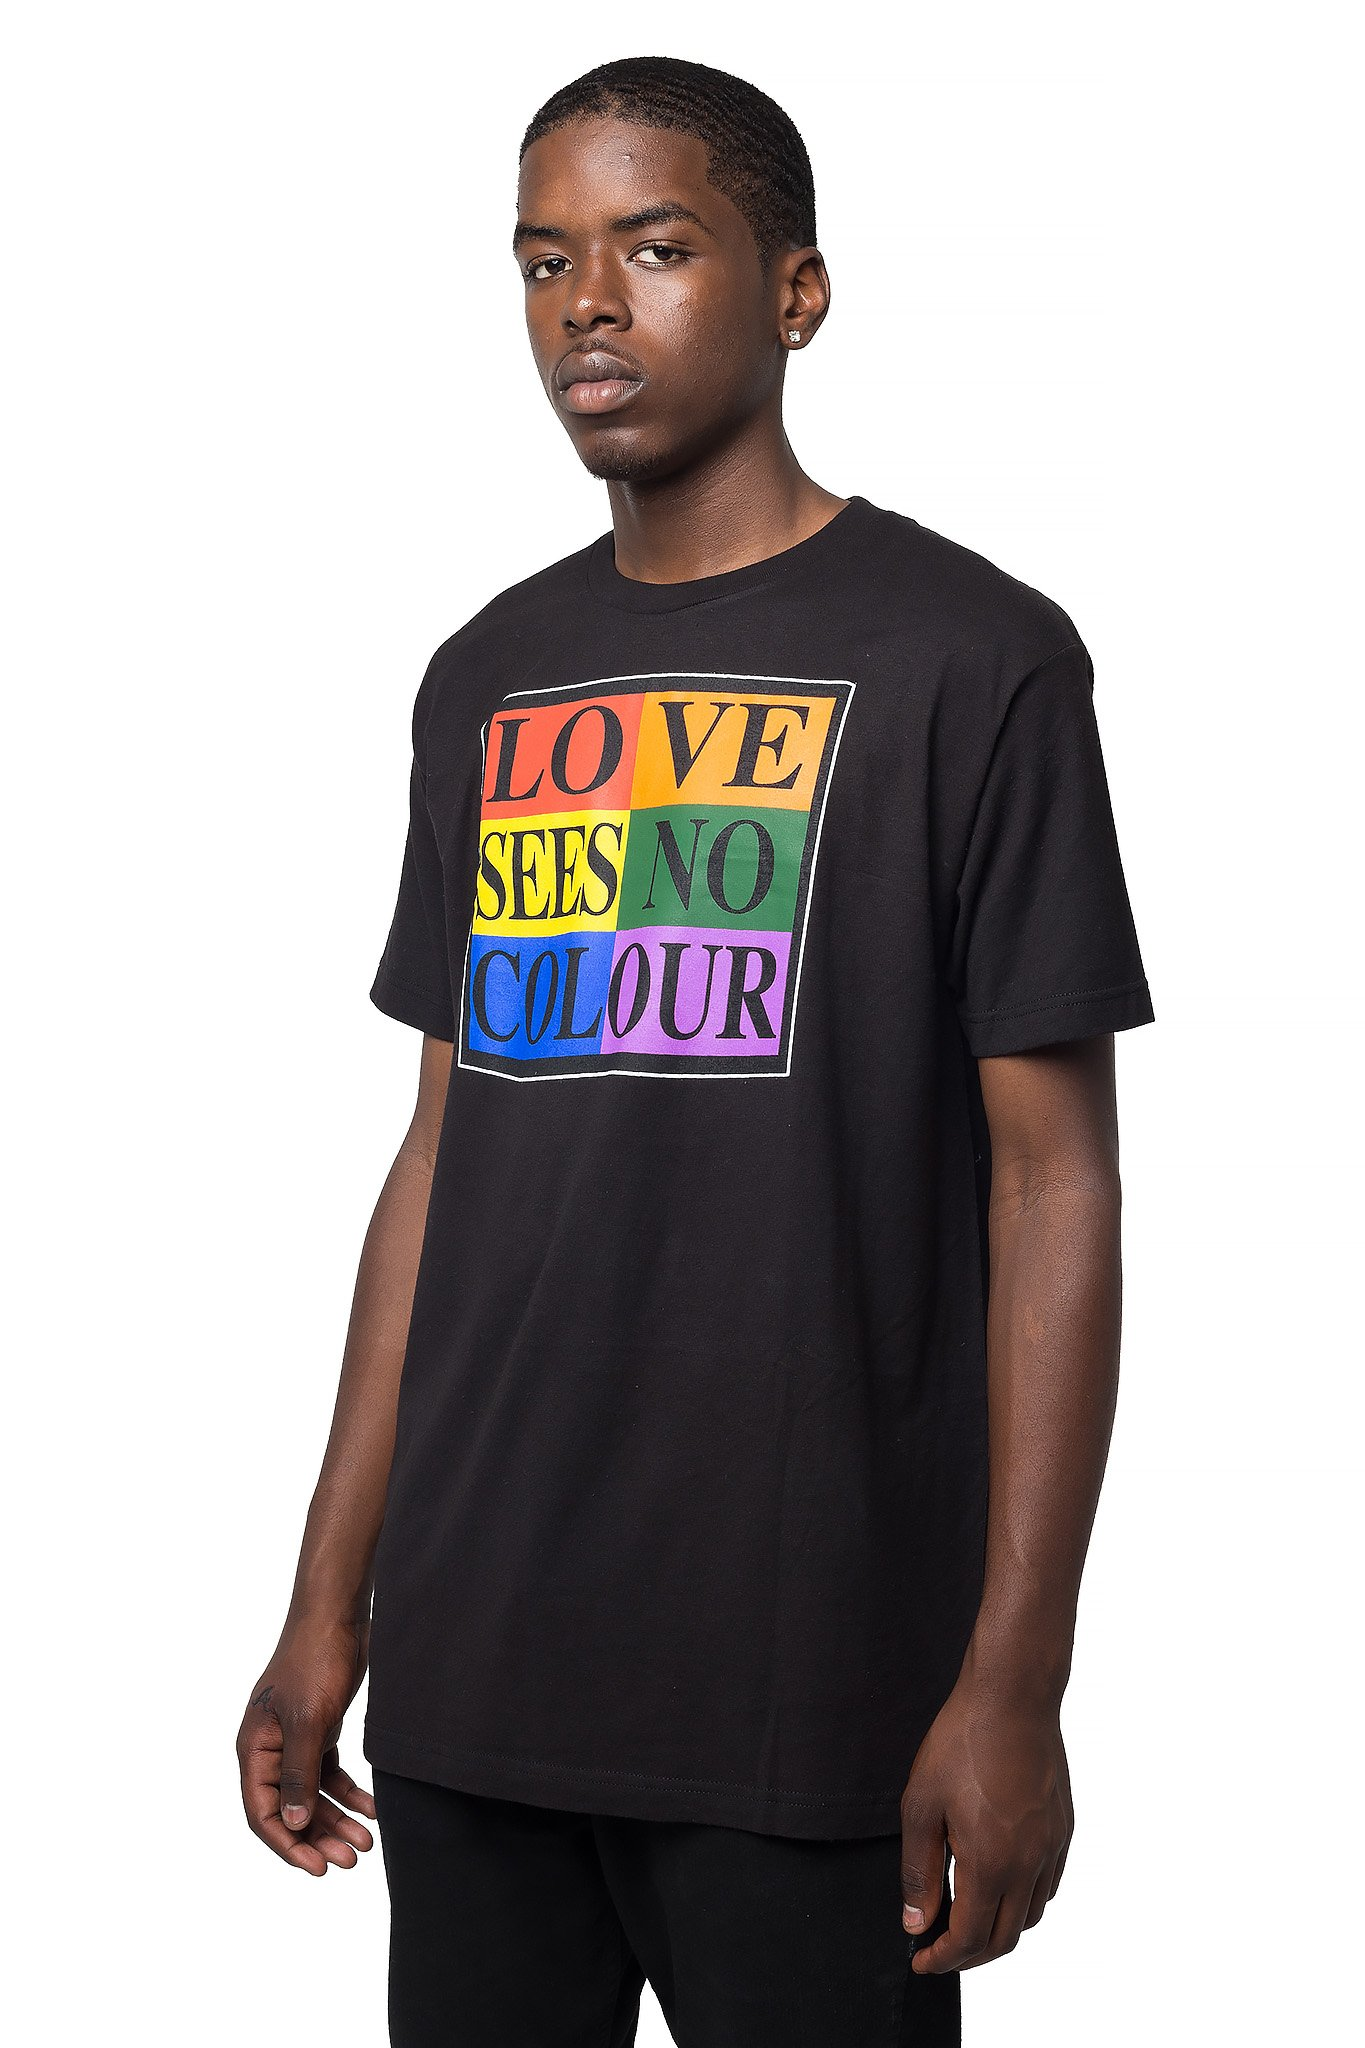 Cross_Colours_LOVE_SEES_NO_COLOUR_T_Shirt__Black